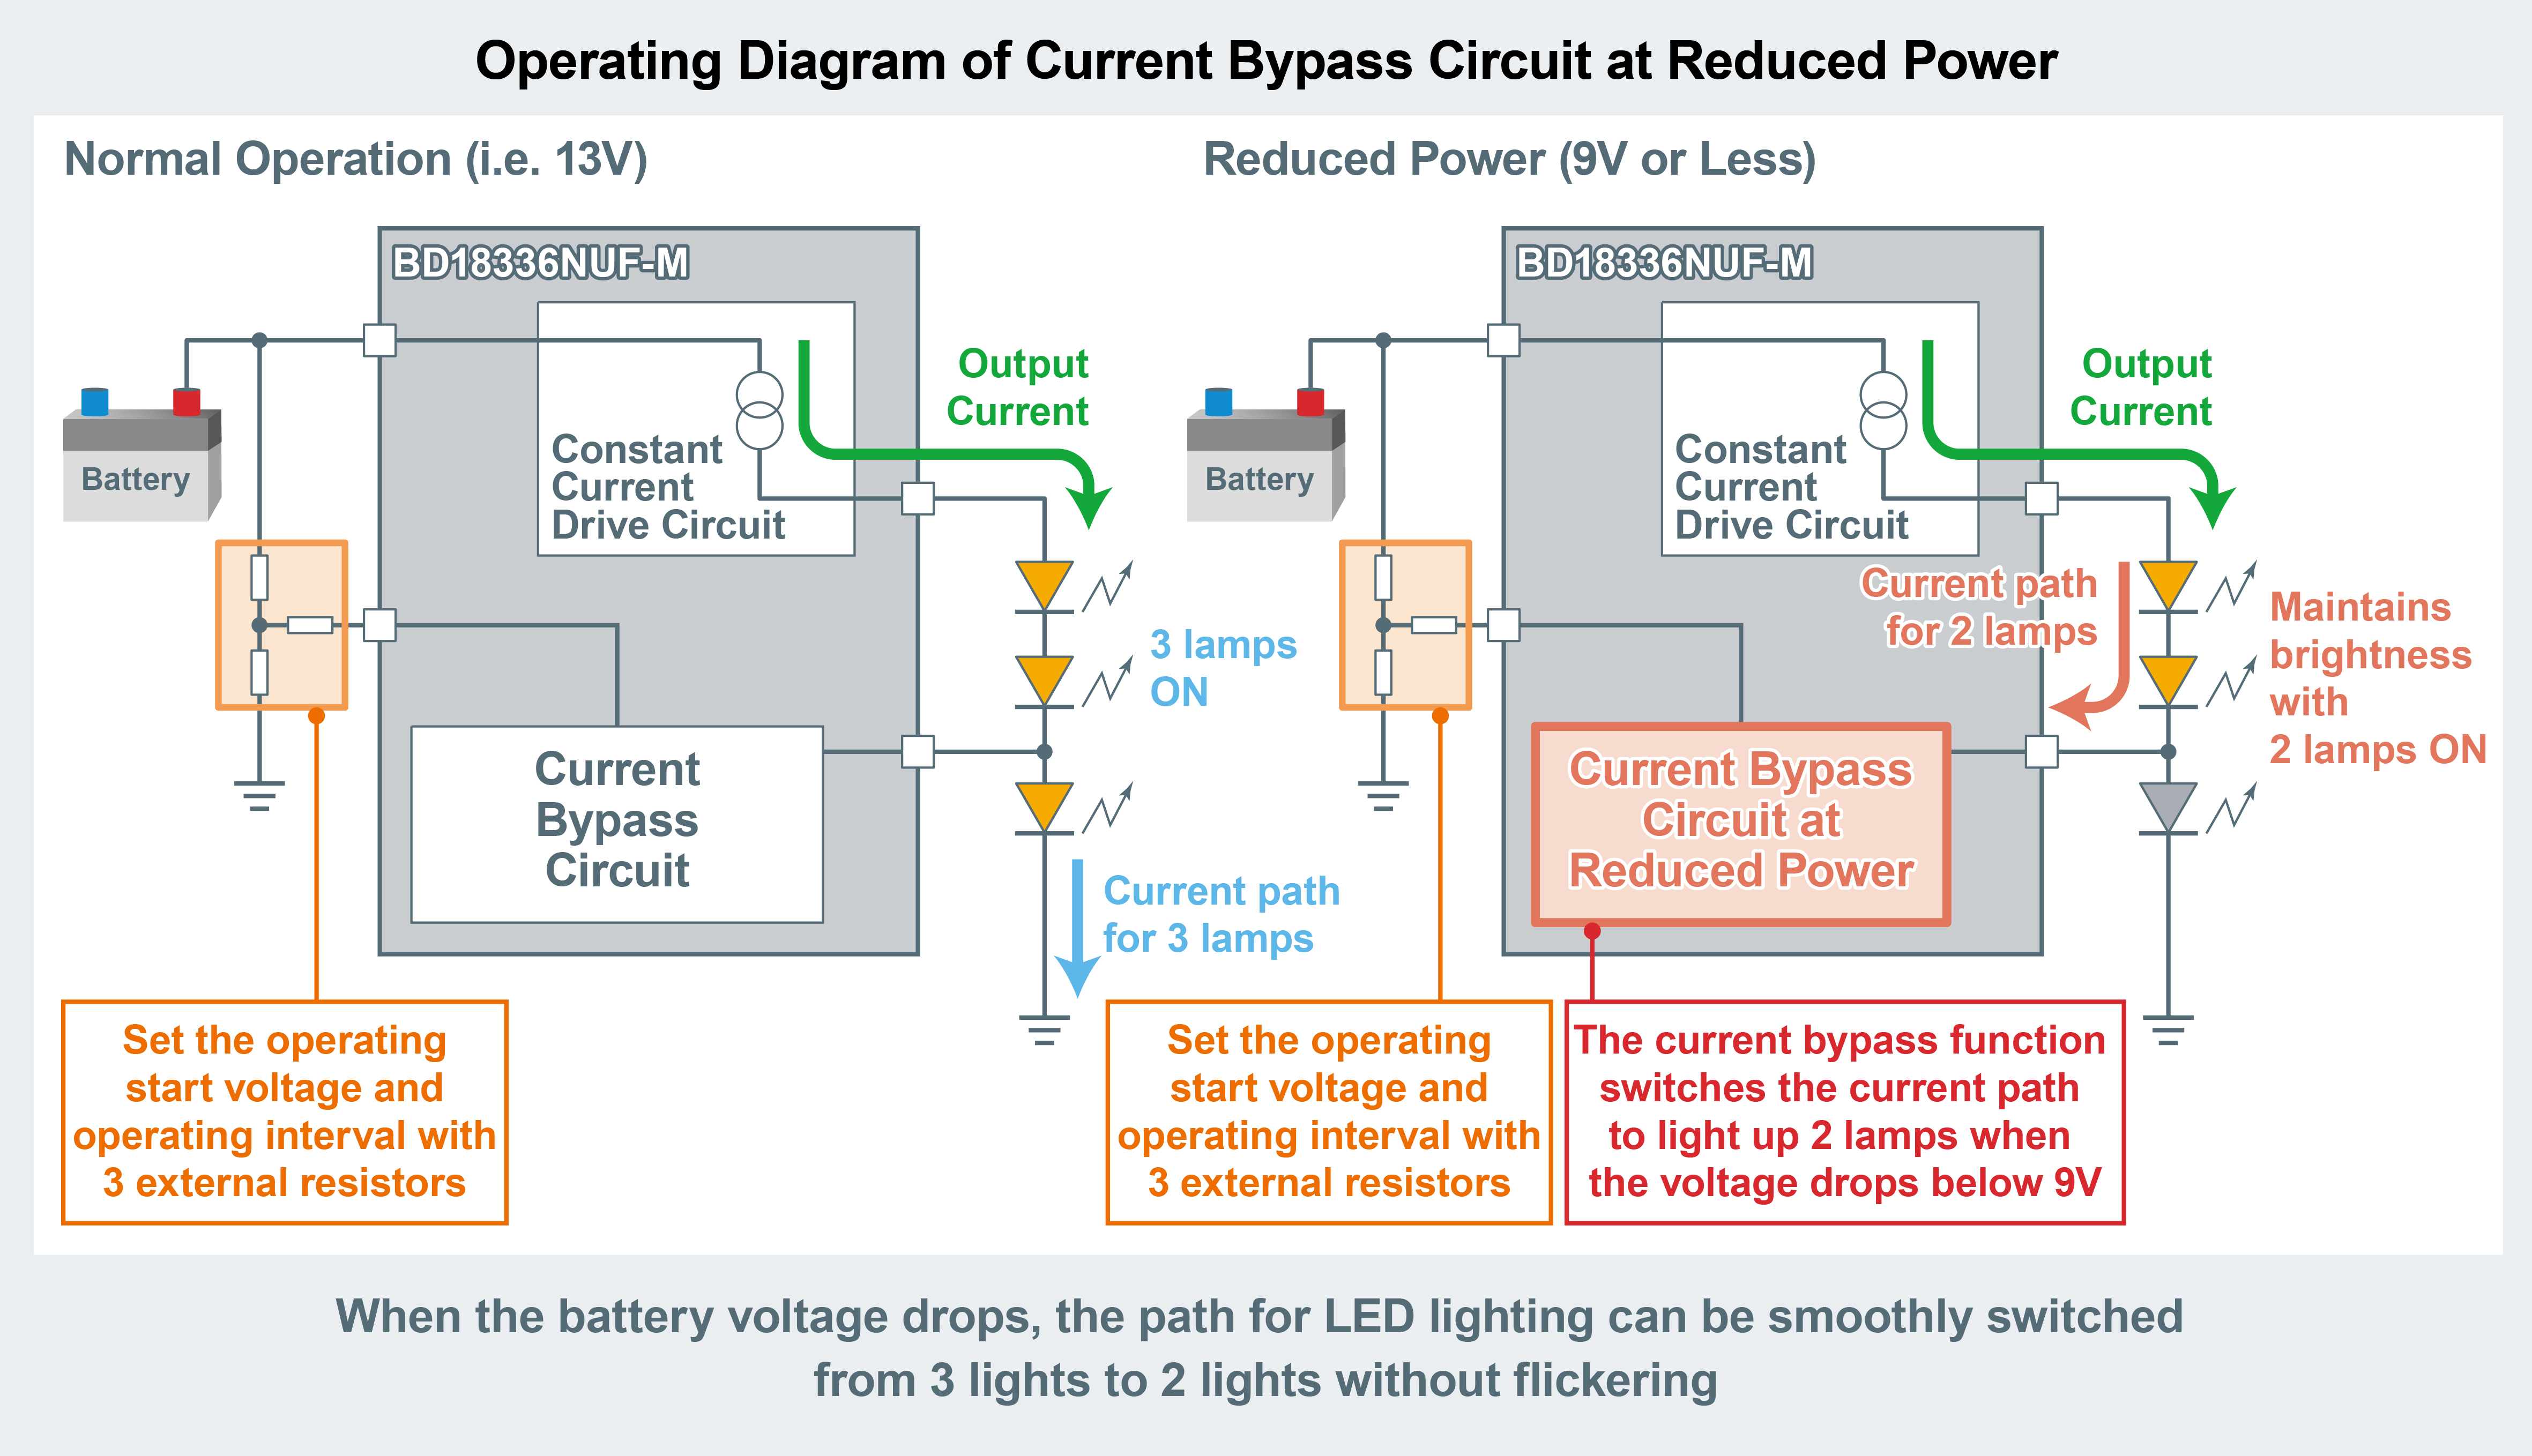 LED Driver for Stable Lighting During Battery Voltage Drops